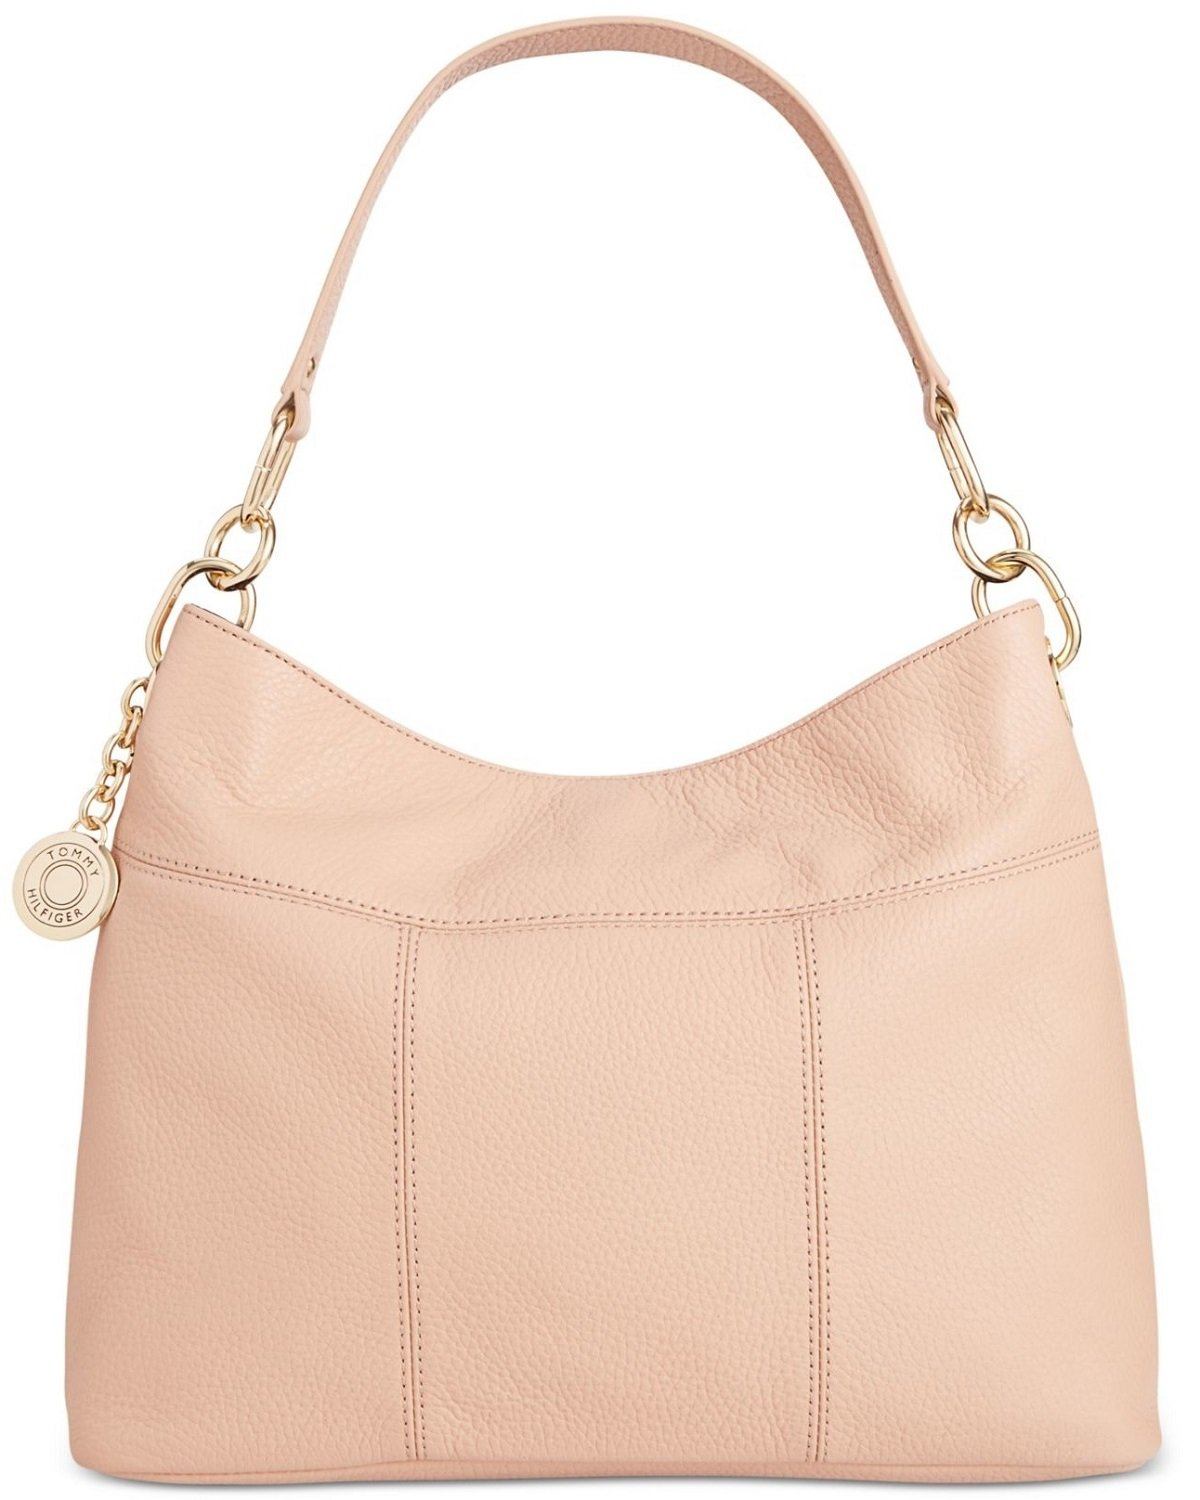 Tommy Hilfiger Th Signature Leather Small Hobo, Nude